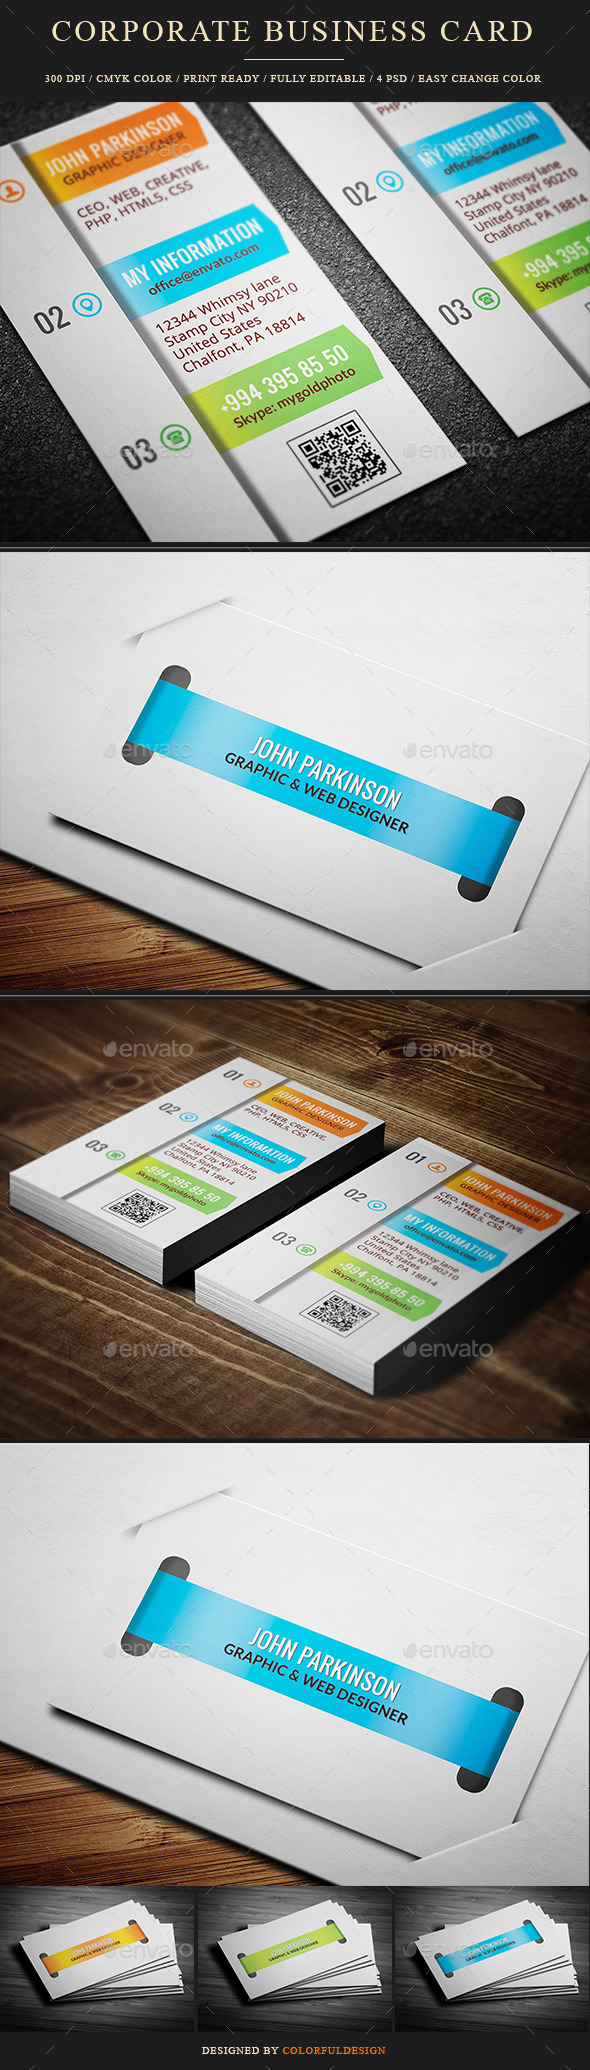 GraphicRiver Corporate Business Card 10117950